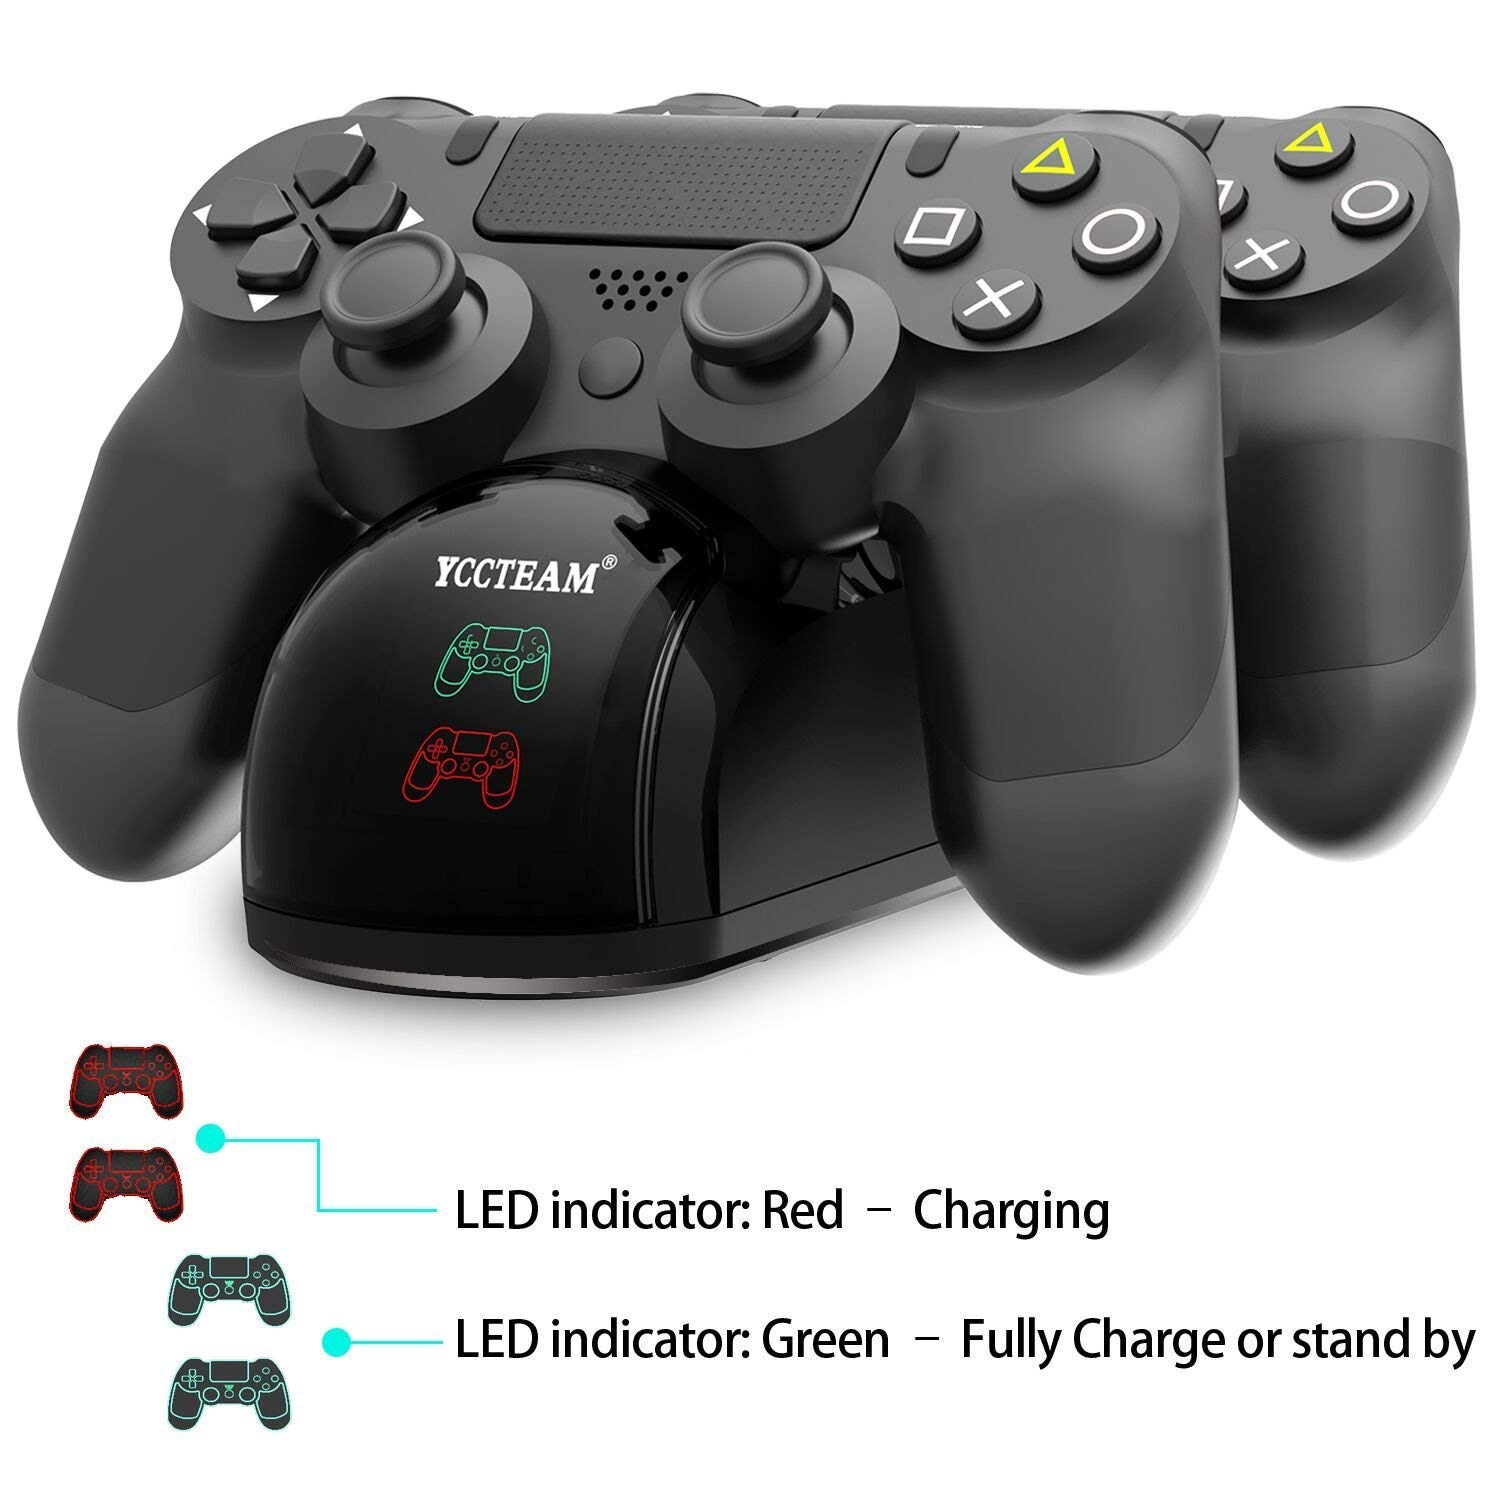 PS4 Controller Charger, Dual USB Fast Charging PS4 Controller Charging Station for Sony Playstation 4/PS4/PS4 Slim/PS4 Pro Controller with 4 Thumb Grips